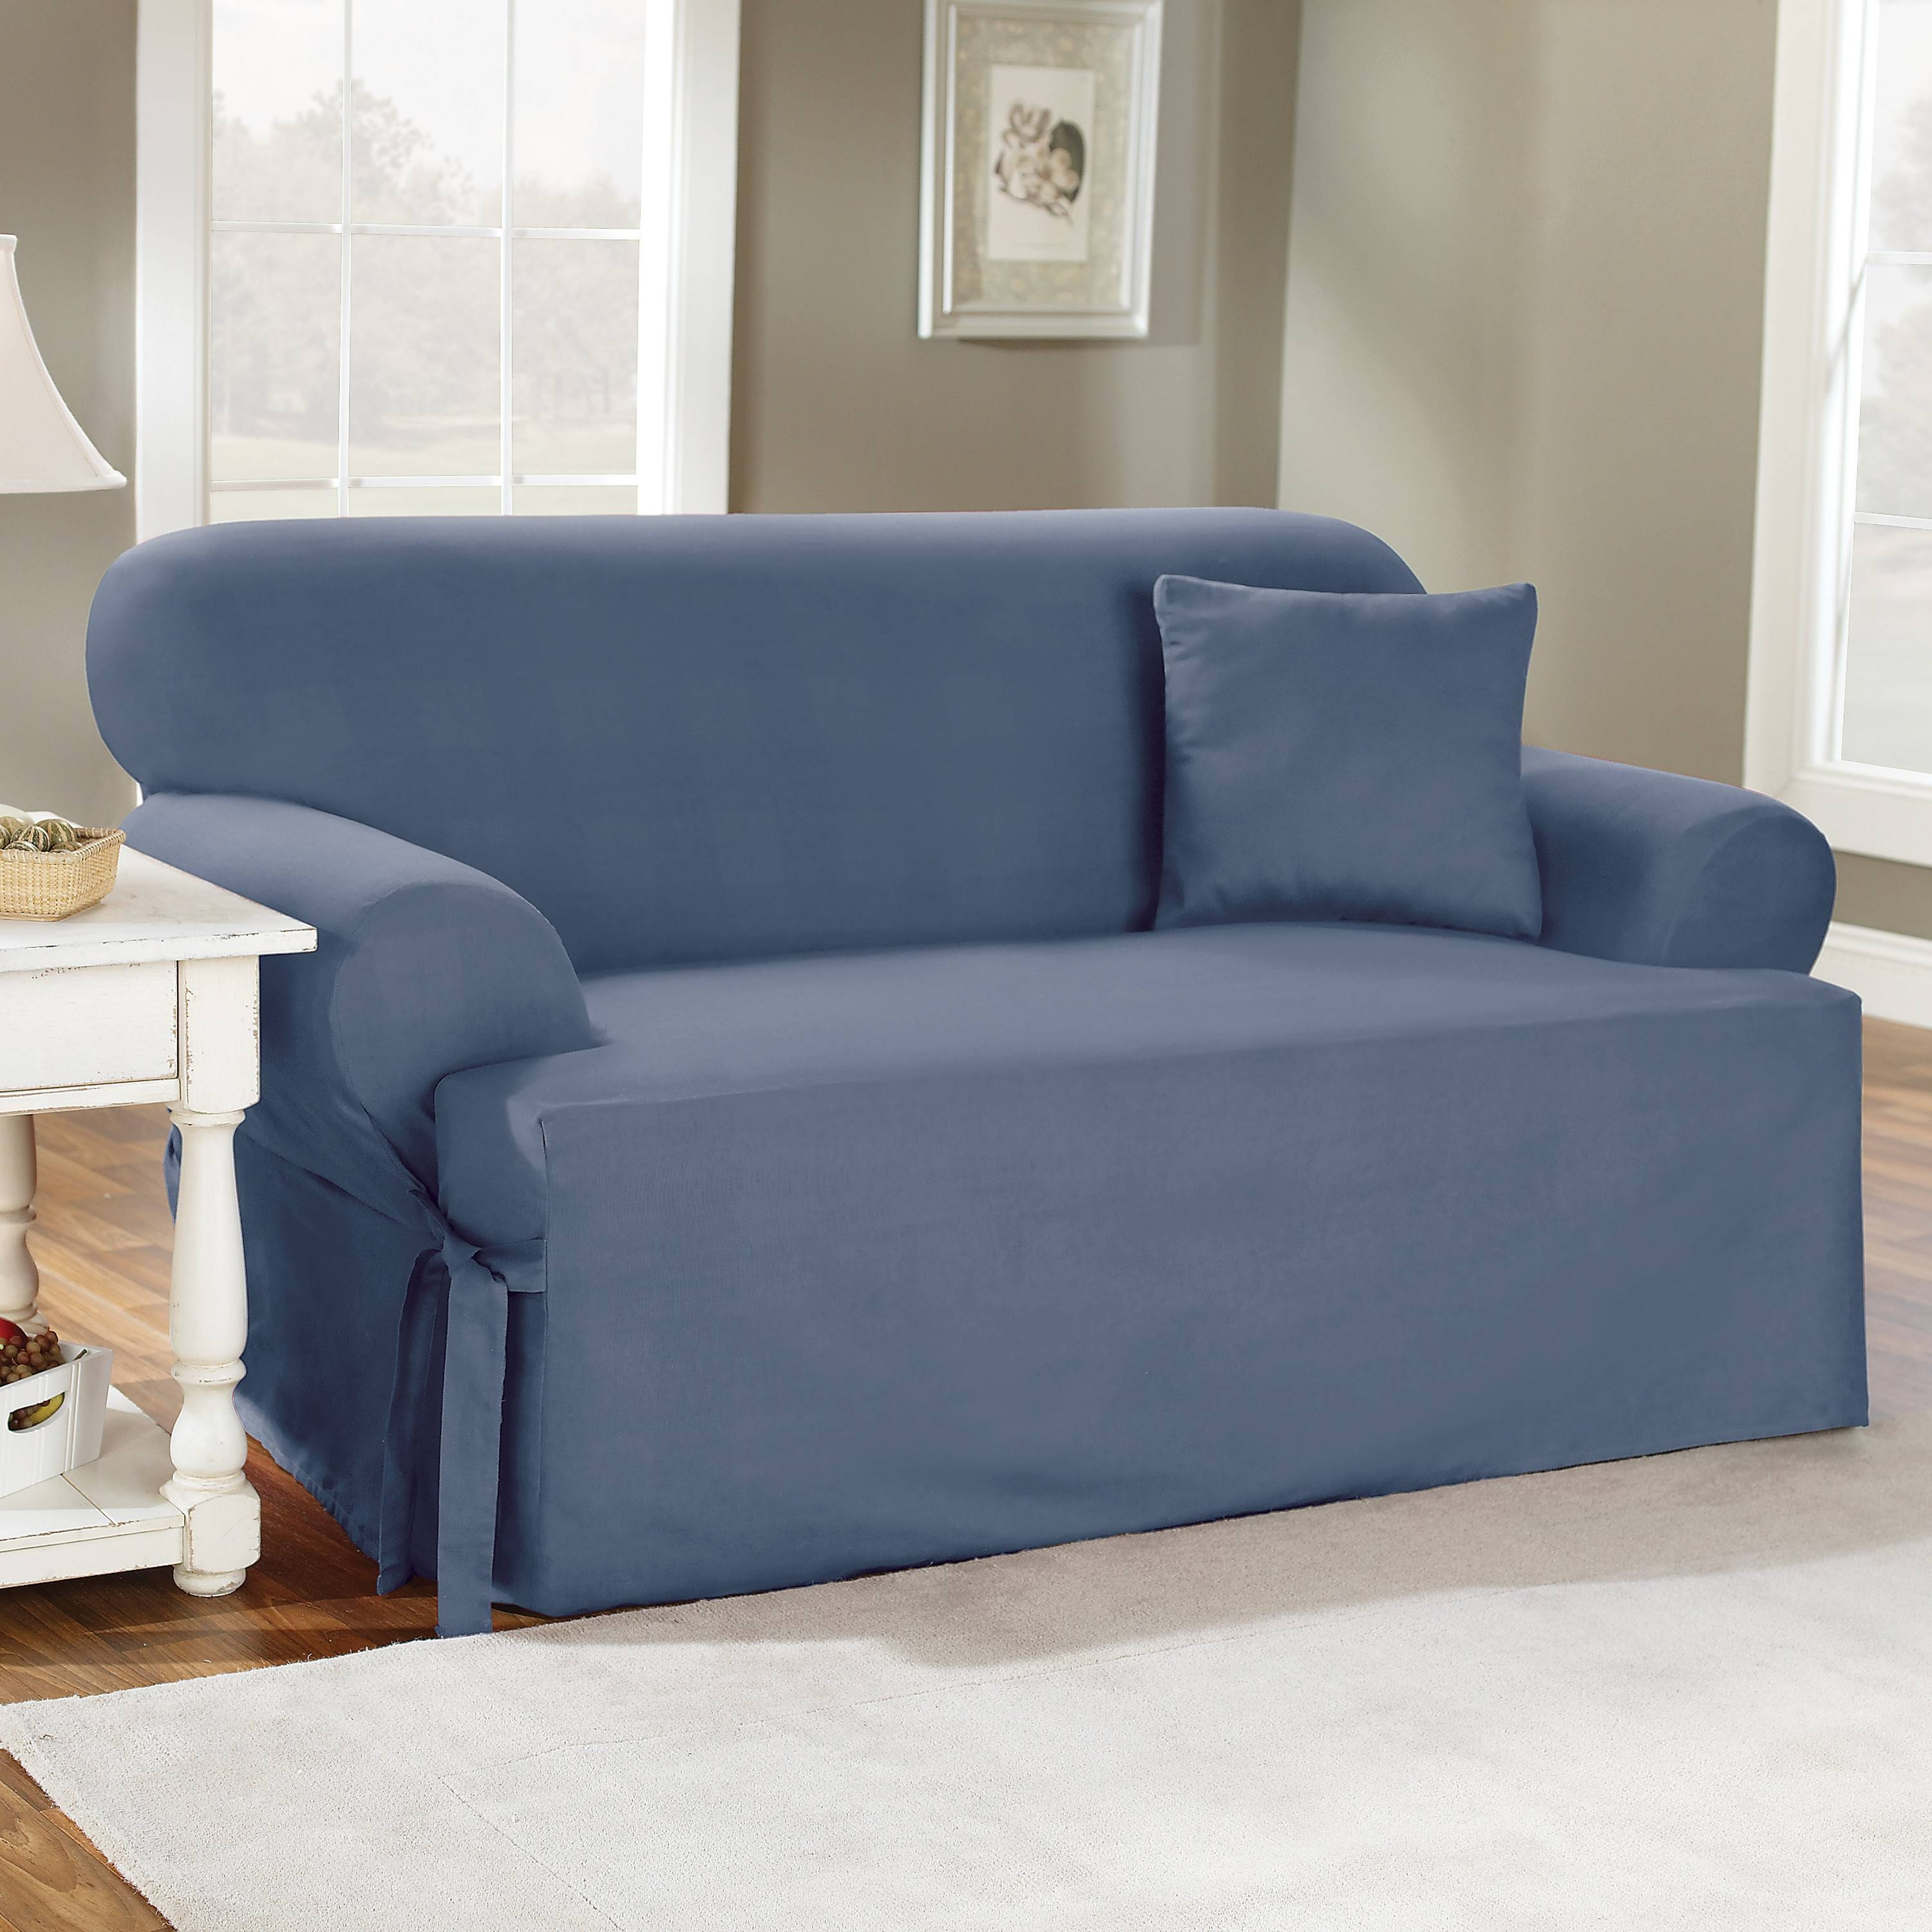 Decor: Stylish T Cushion Sofa Slipcover For Living Room Decoration throughout Loveseat Slipcovers 3 Pieces (Image 3 of 15)